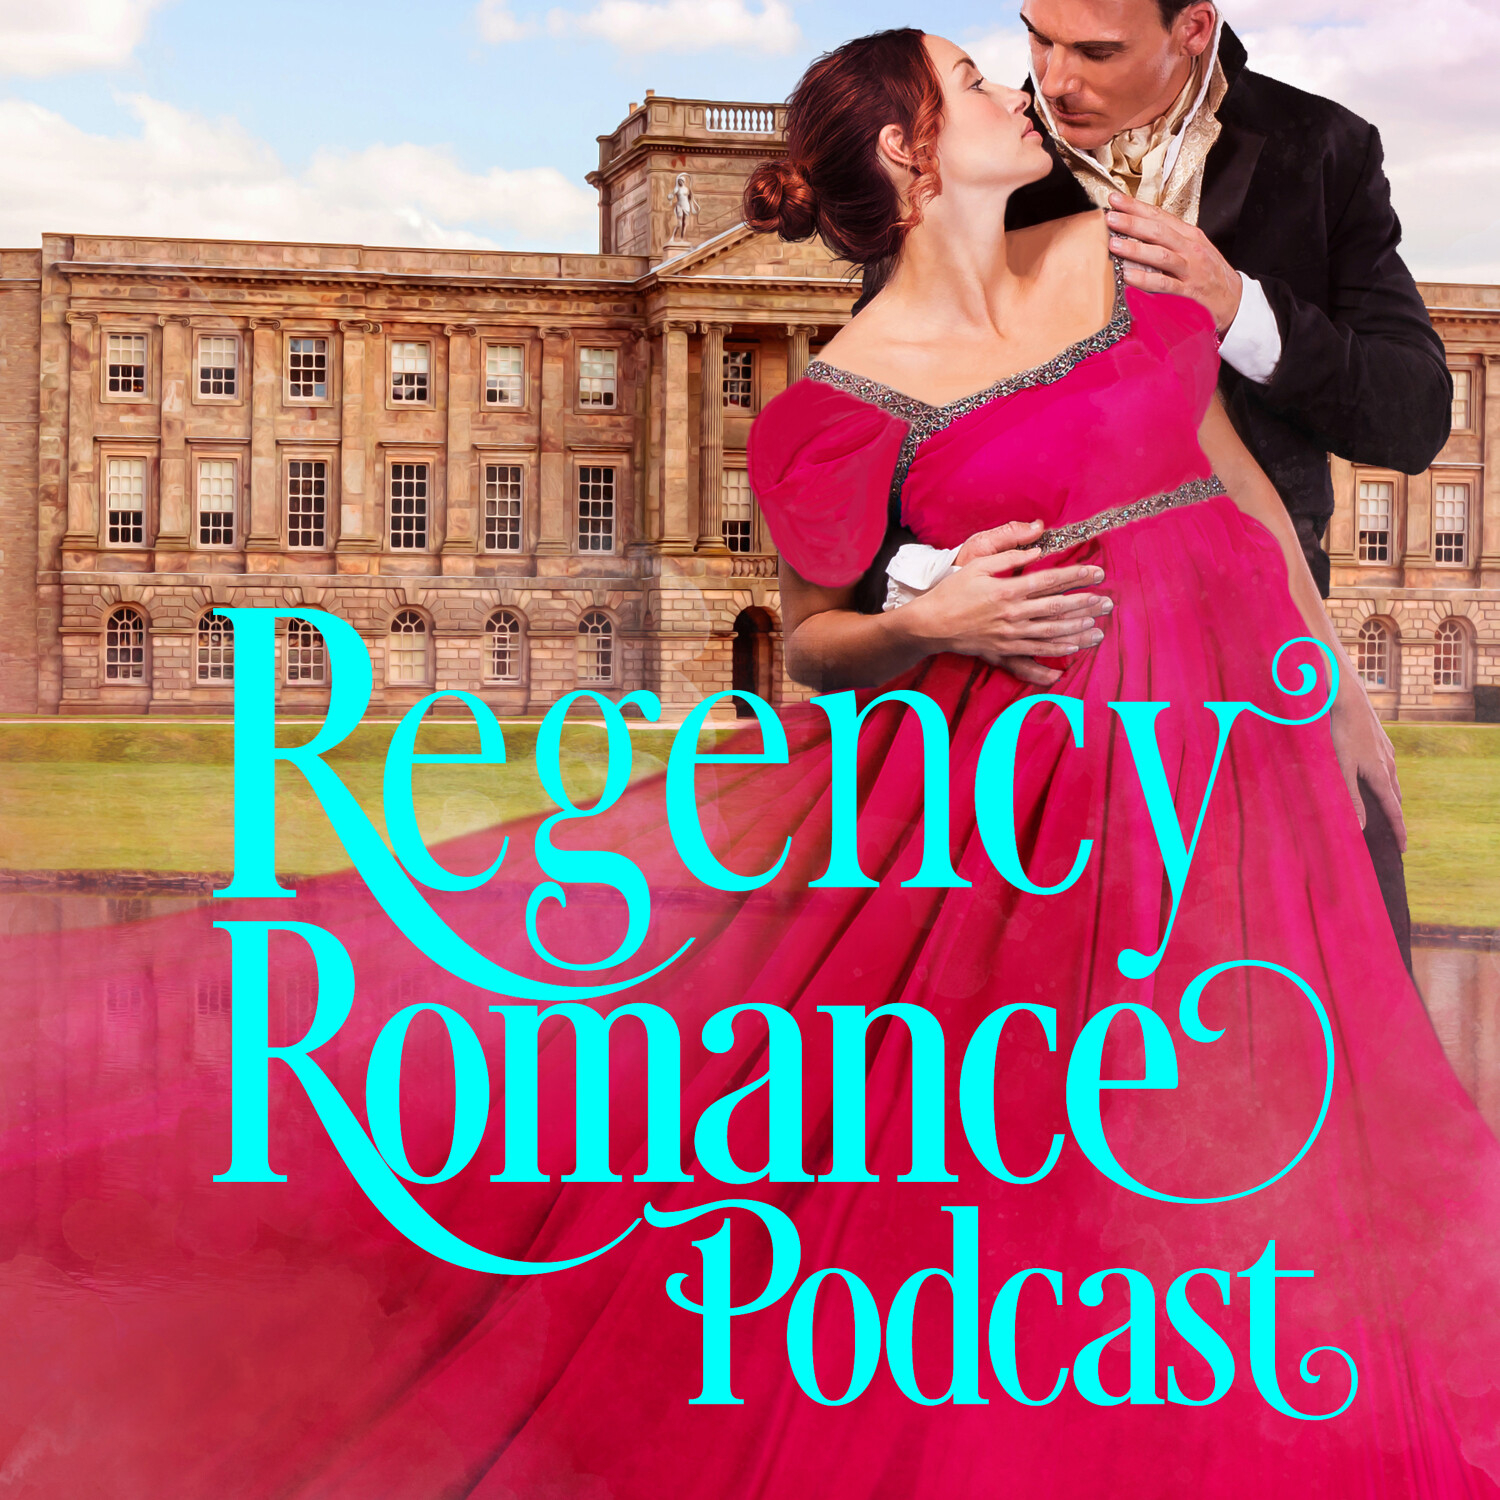 Regency Romance Podcast